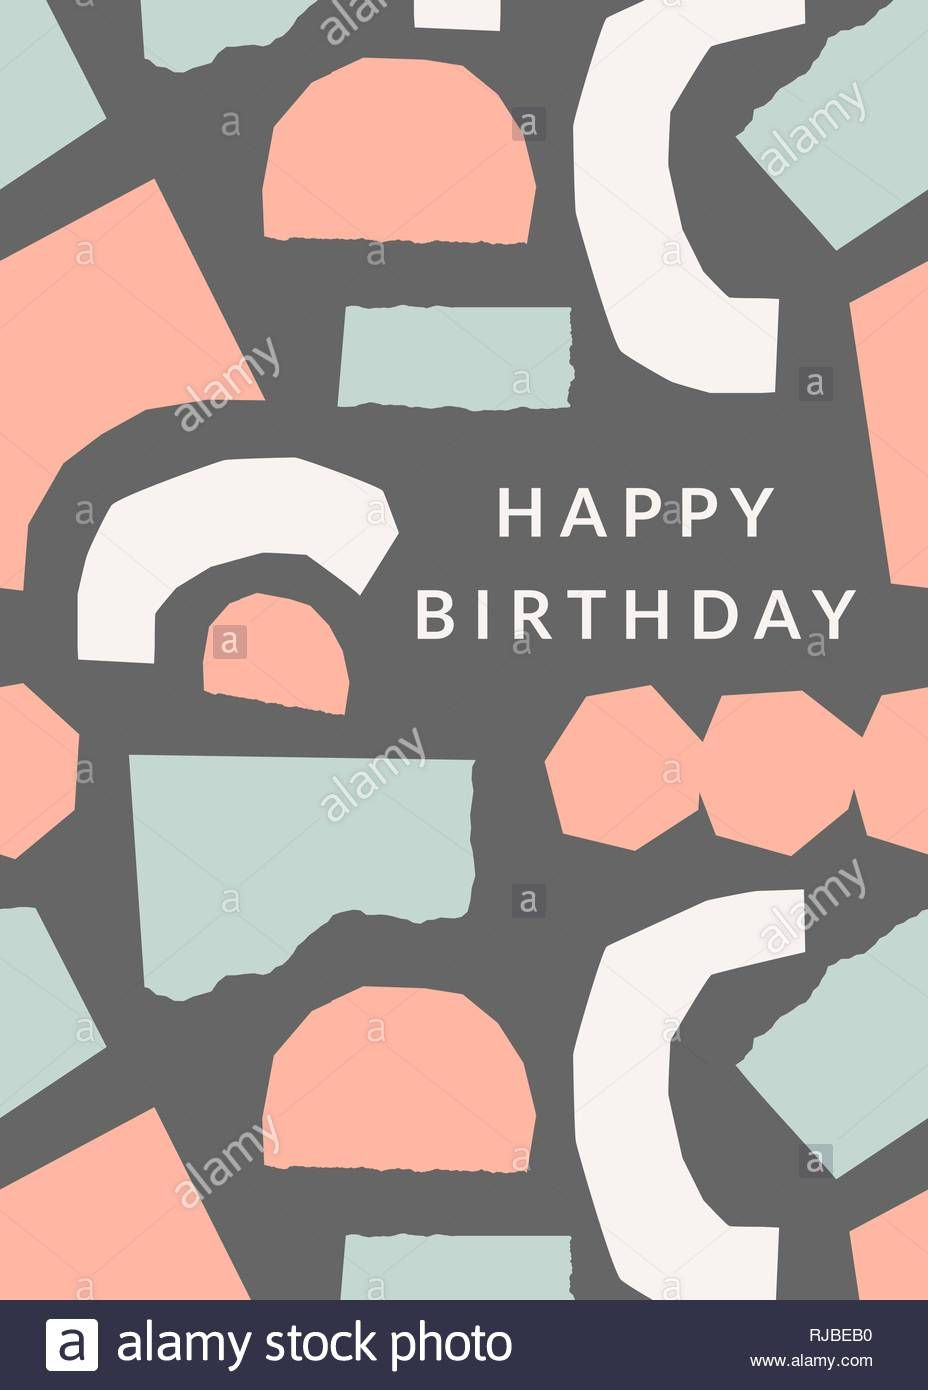 The Surprising Greeting Card Template With Torn Paper Pieces In Pastel Inside Birthday Card Col Greeting Card Template Birthday Card Template Diy Holiday Cards